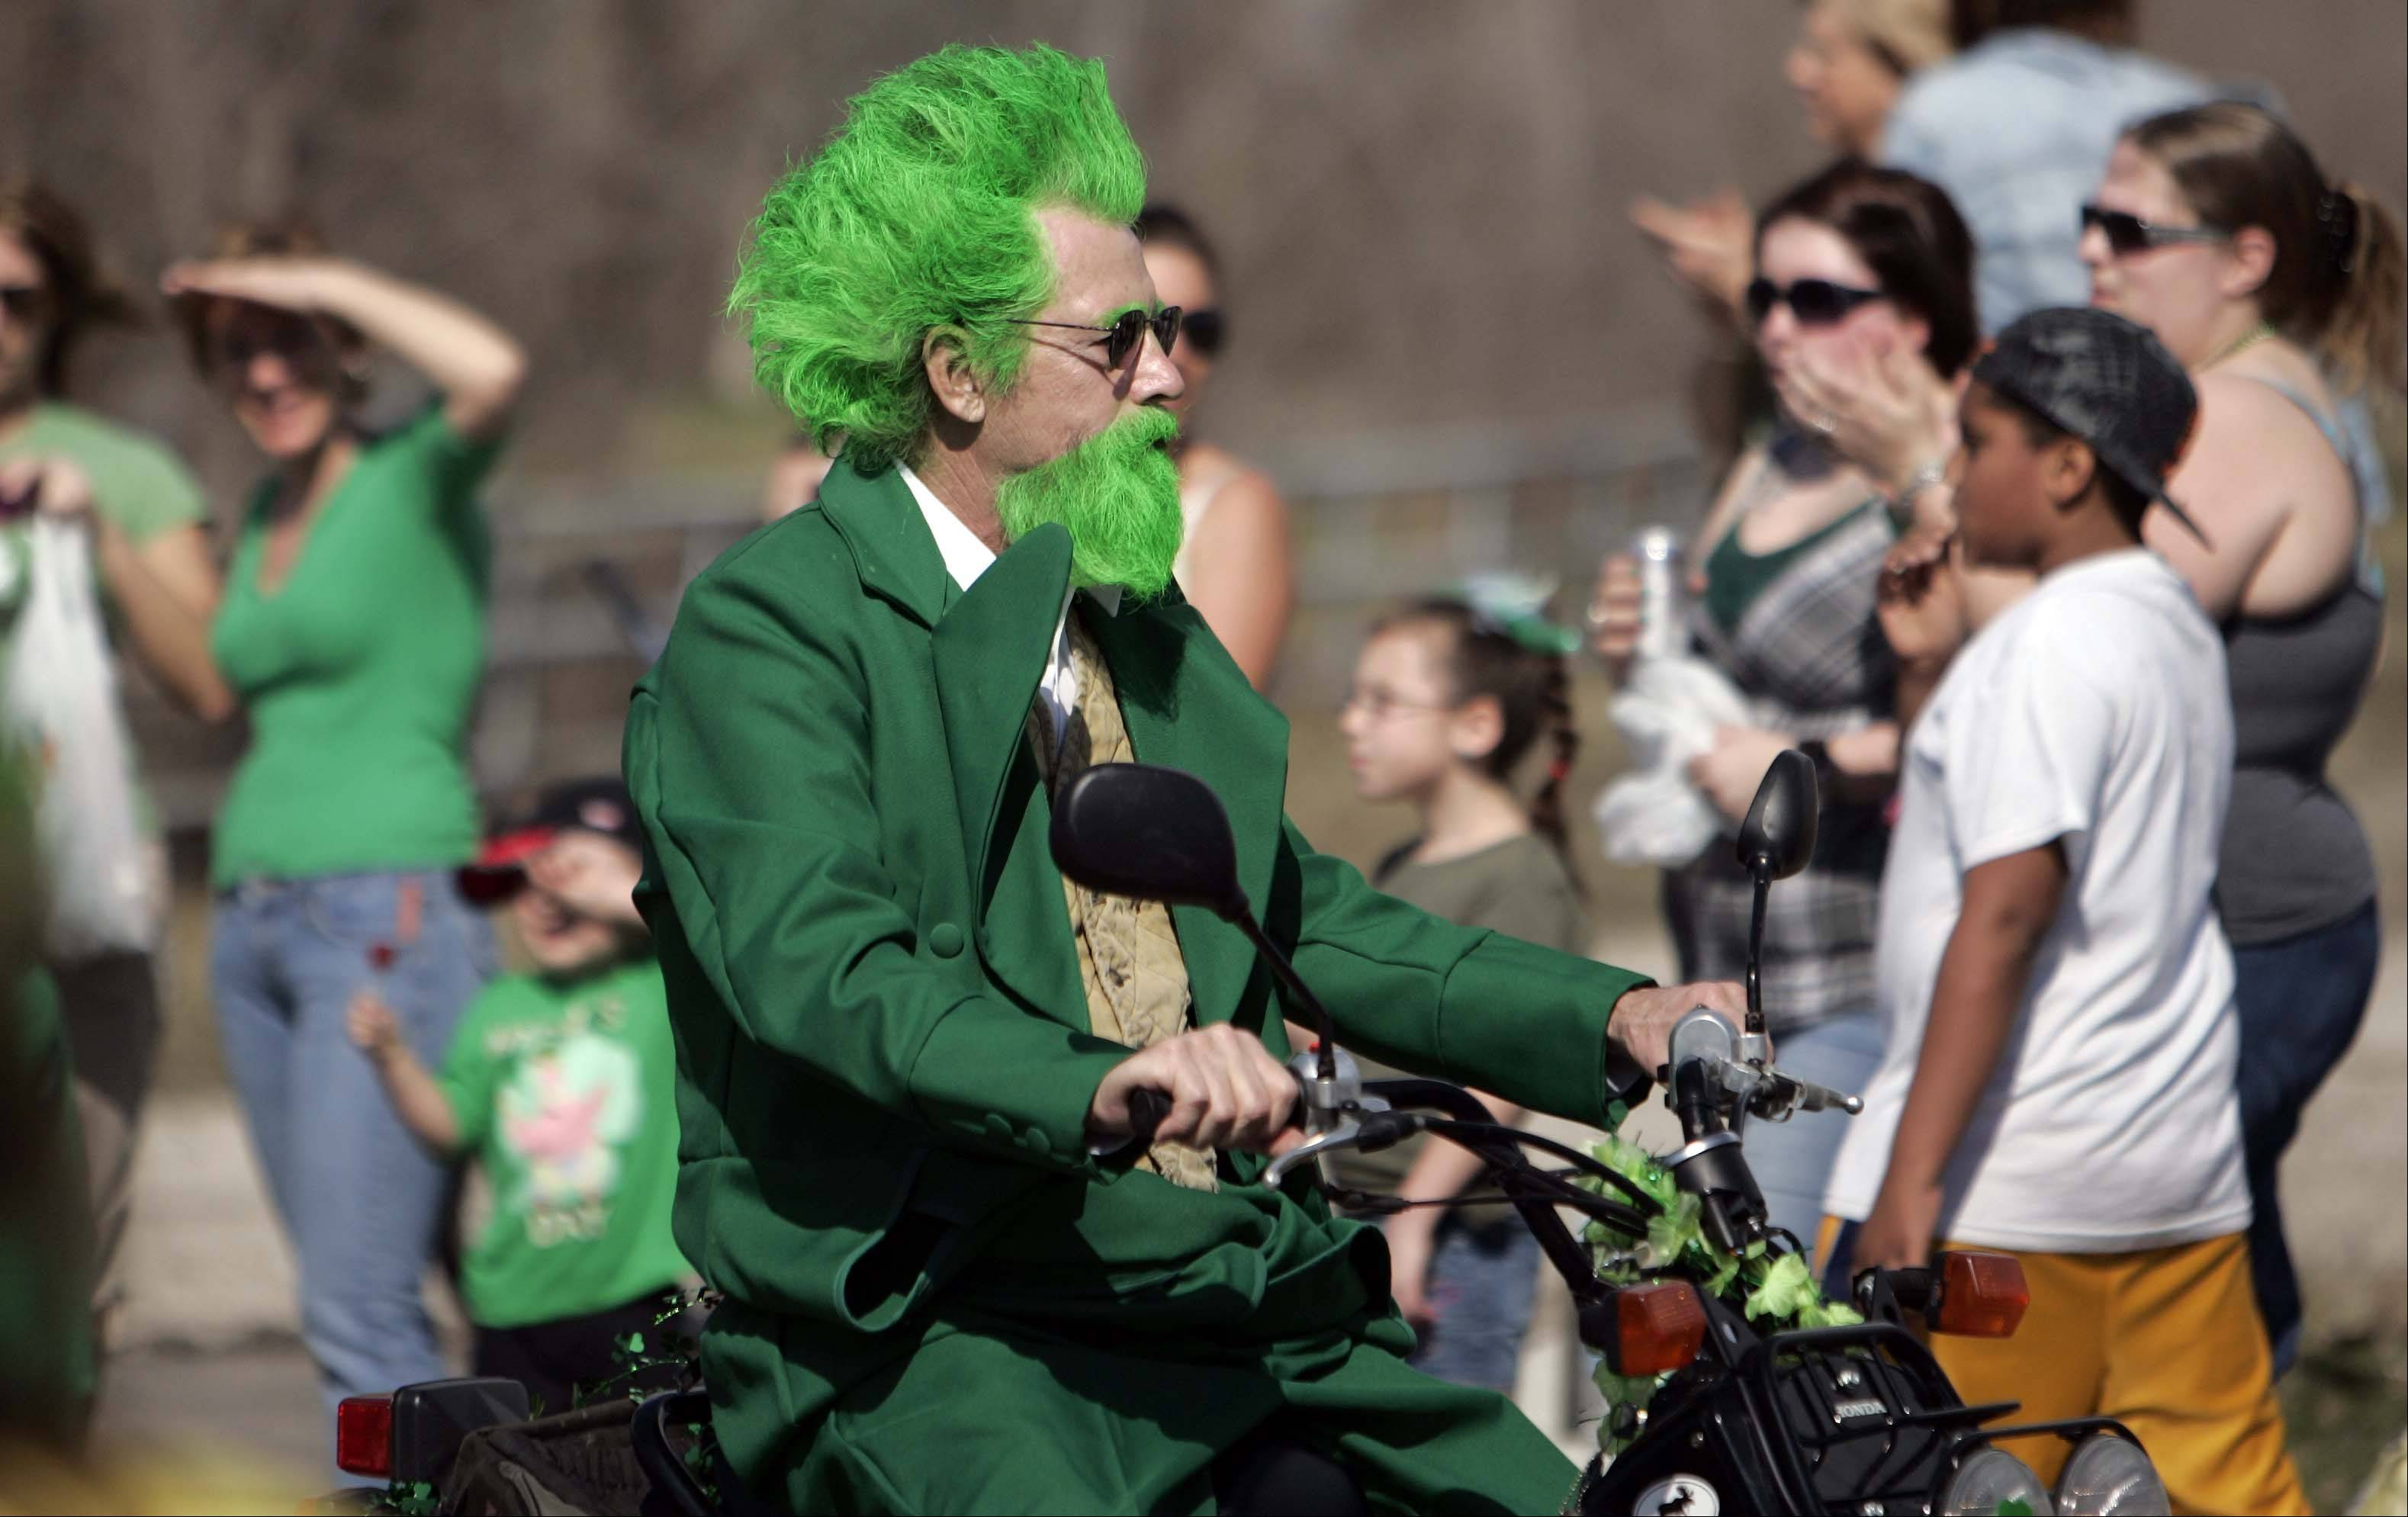 With a green suit to match his bright green hair, Kevin Combest rides through the Thom McNamee Memorial St. Patrick's Day Parade in East Dundee last year. This year's parade is Saturday, March 16.